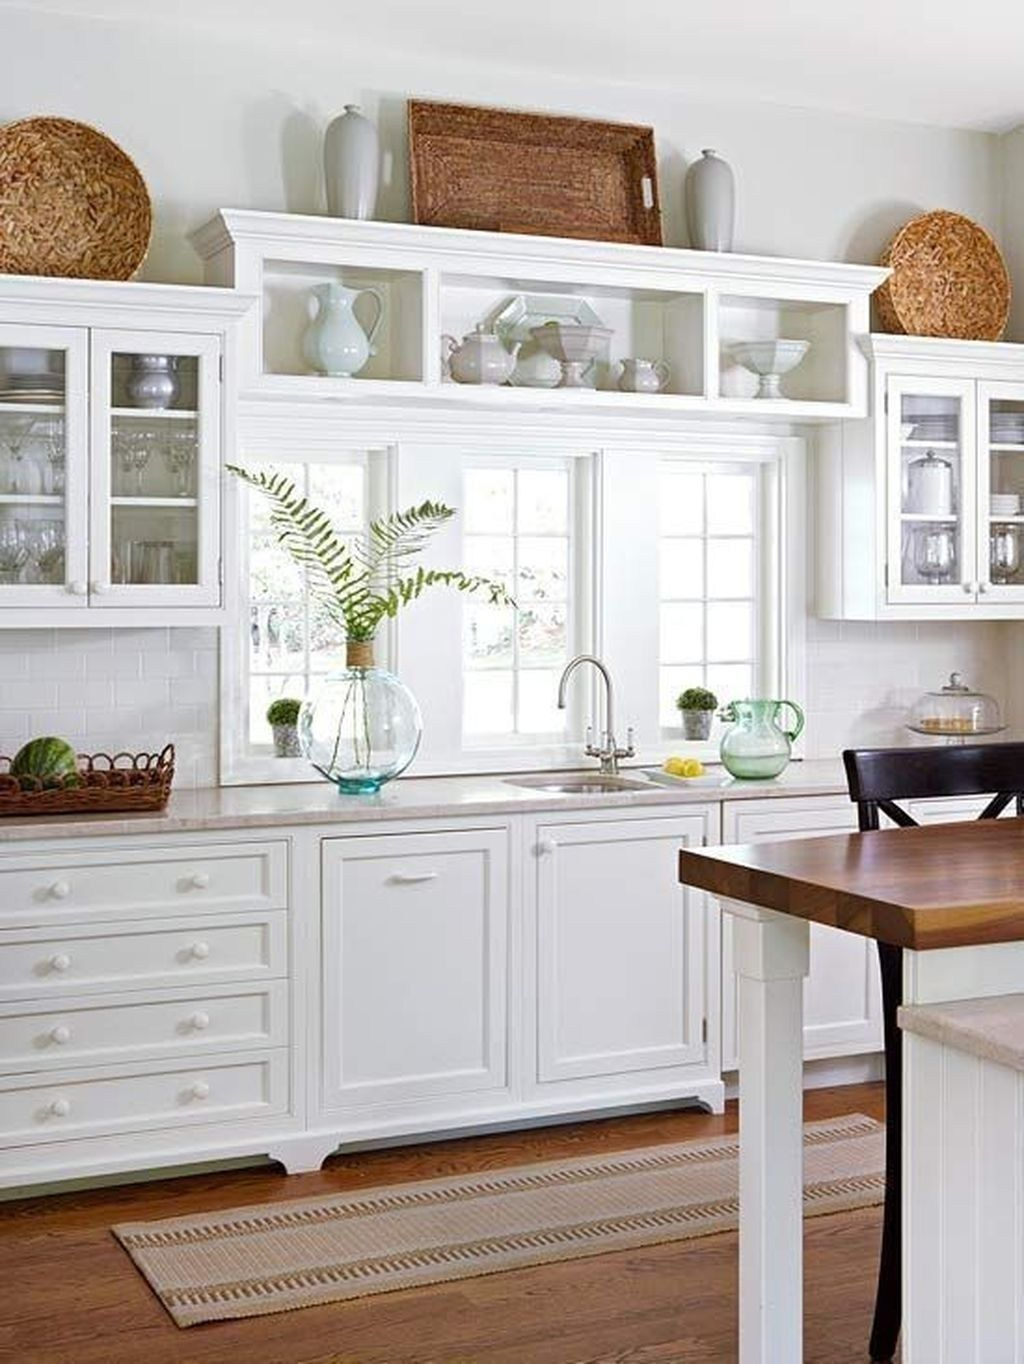 European Farmhouse Kitchen Cabinet Design Ideas 43